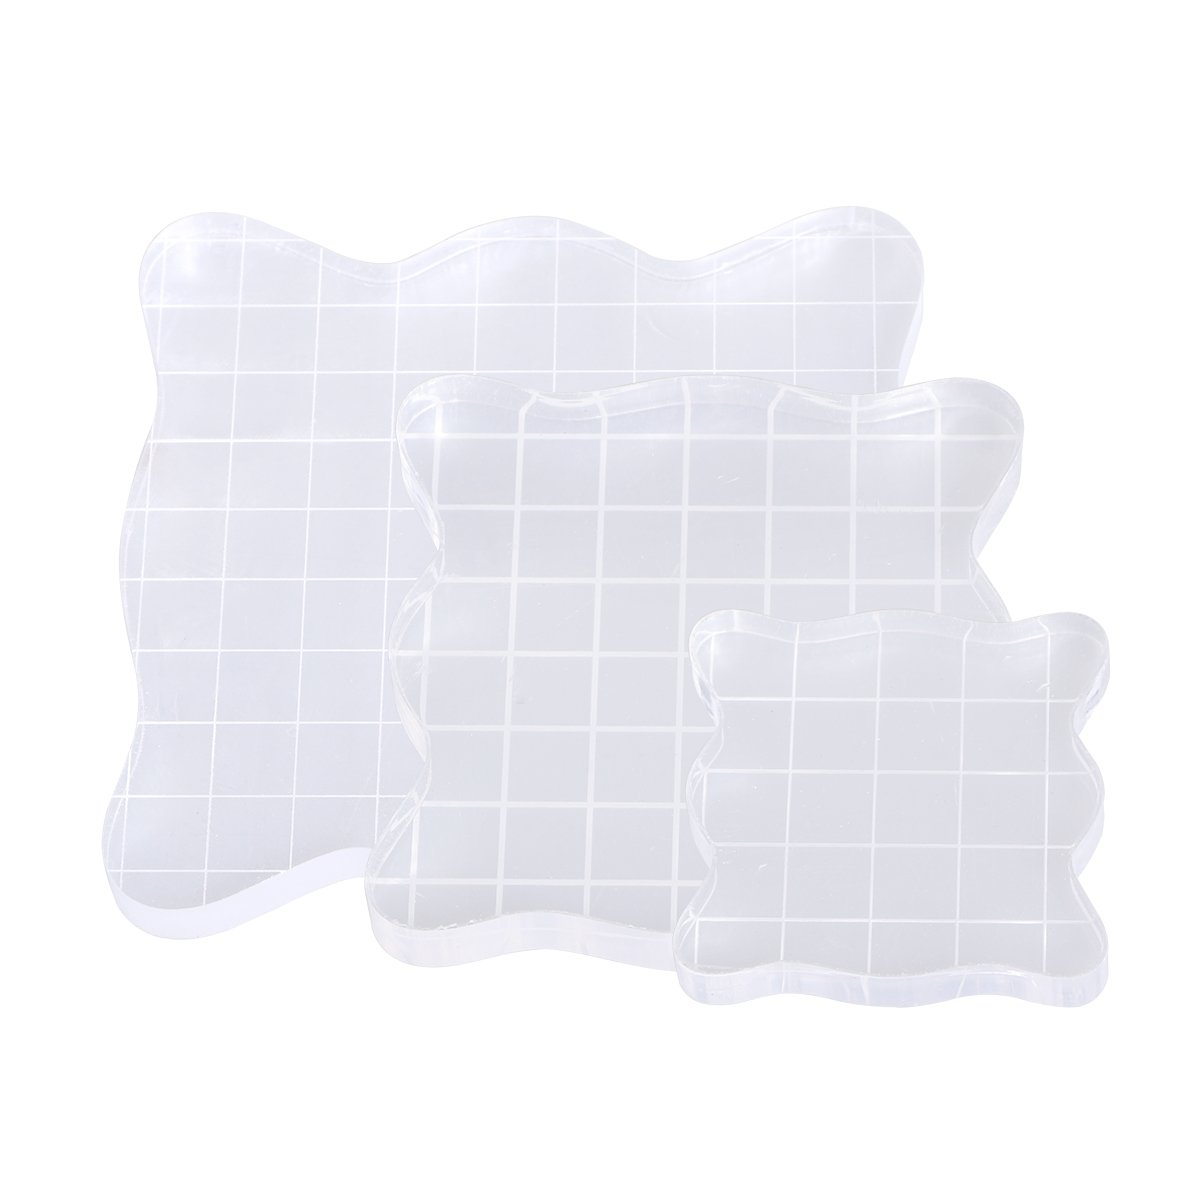 MagiDeal Clear Acrylic Block Stamp Blocks with Grid Stamping Craft Tool DIY 160x60mm